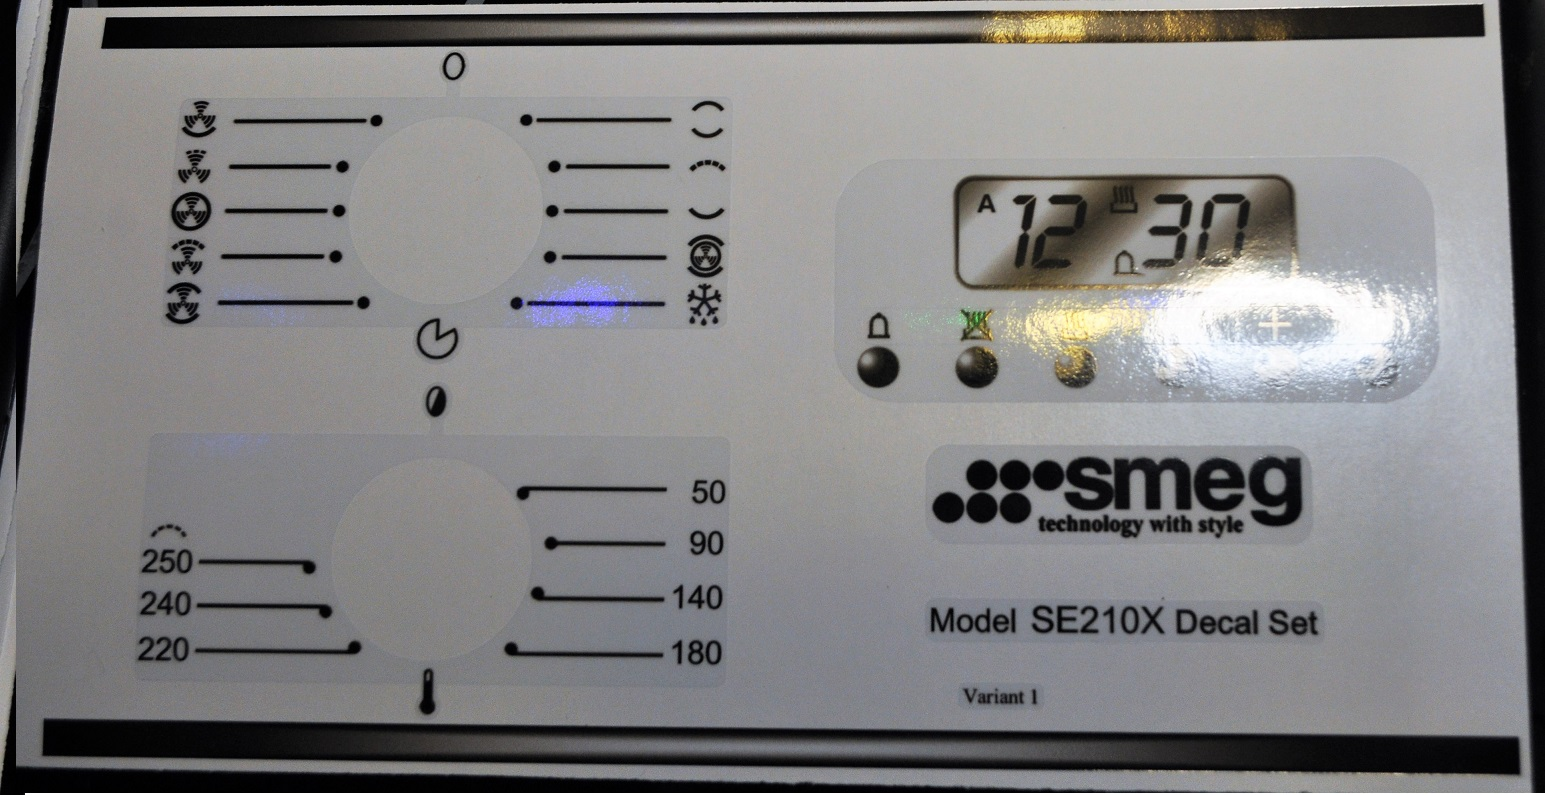 Smeg SE210X variant 1 decal sticker set.